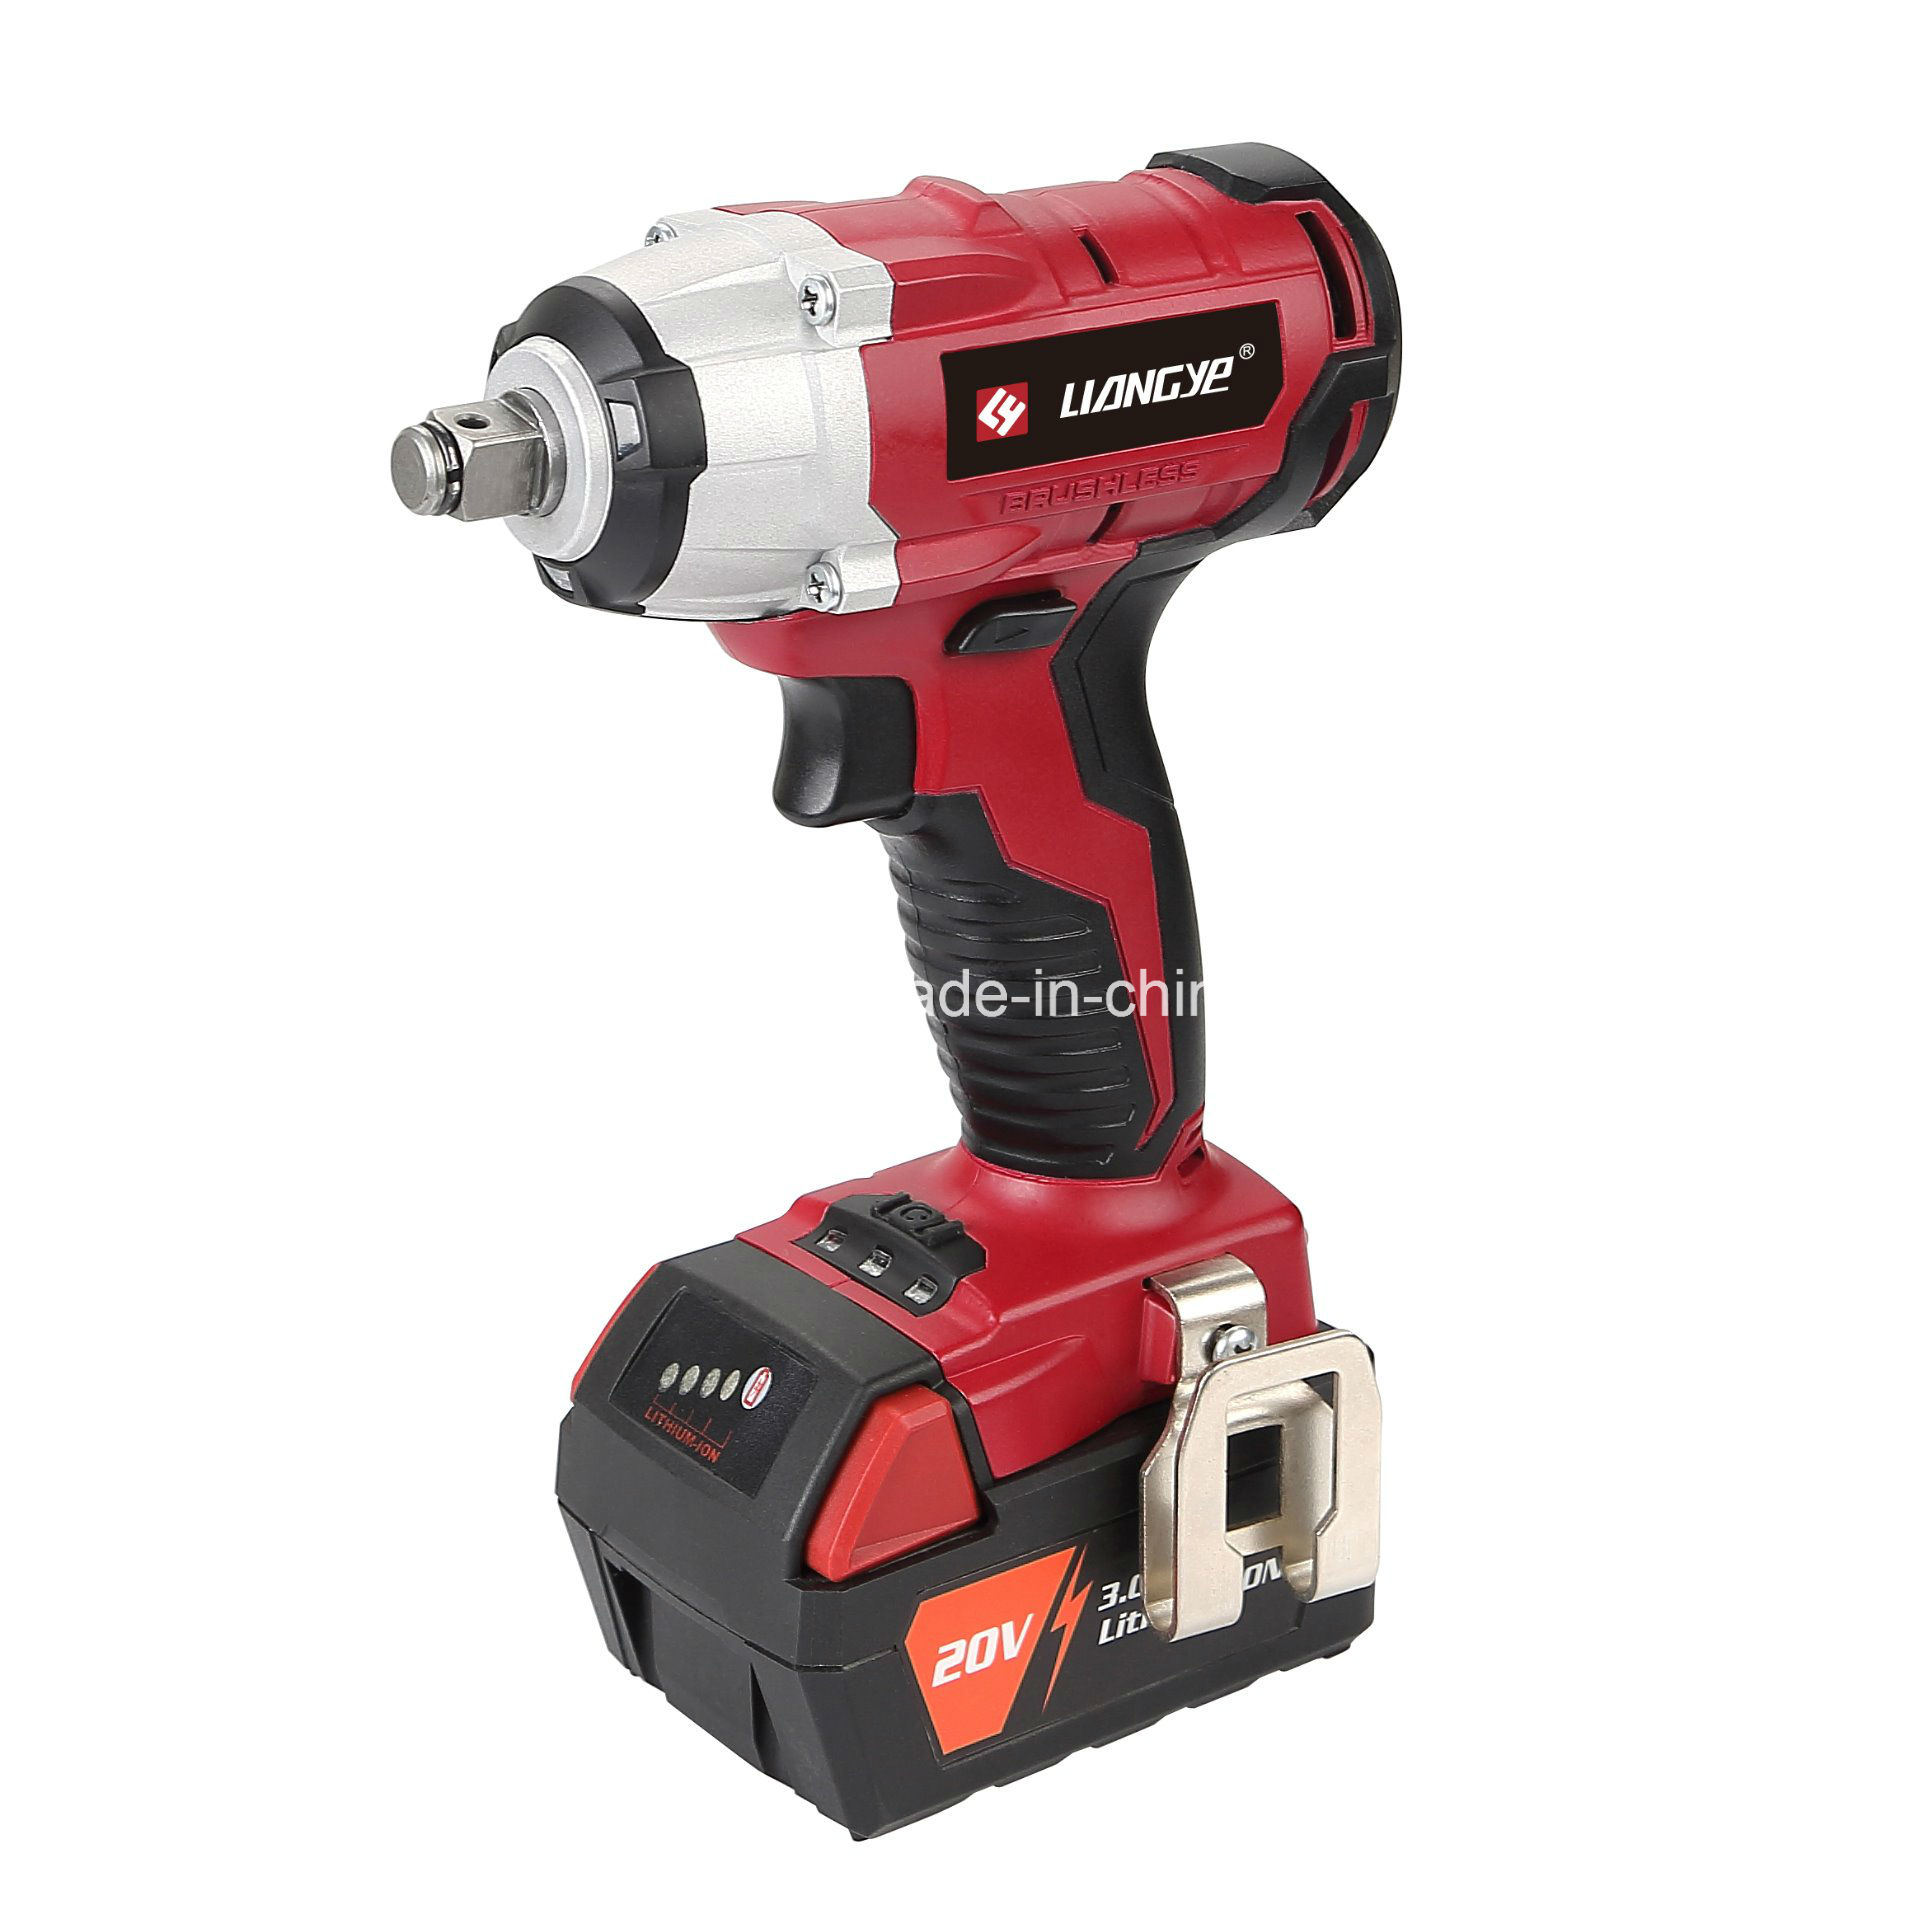 China 18v Li Ion Tool Lcw888 1b Brushless Cordless Impact Wrench Heavy Duty Car